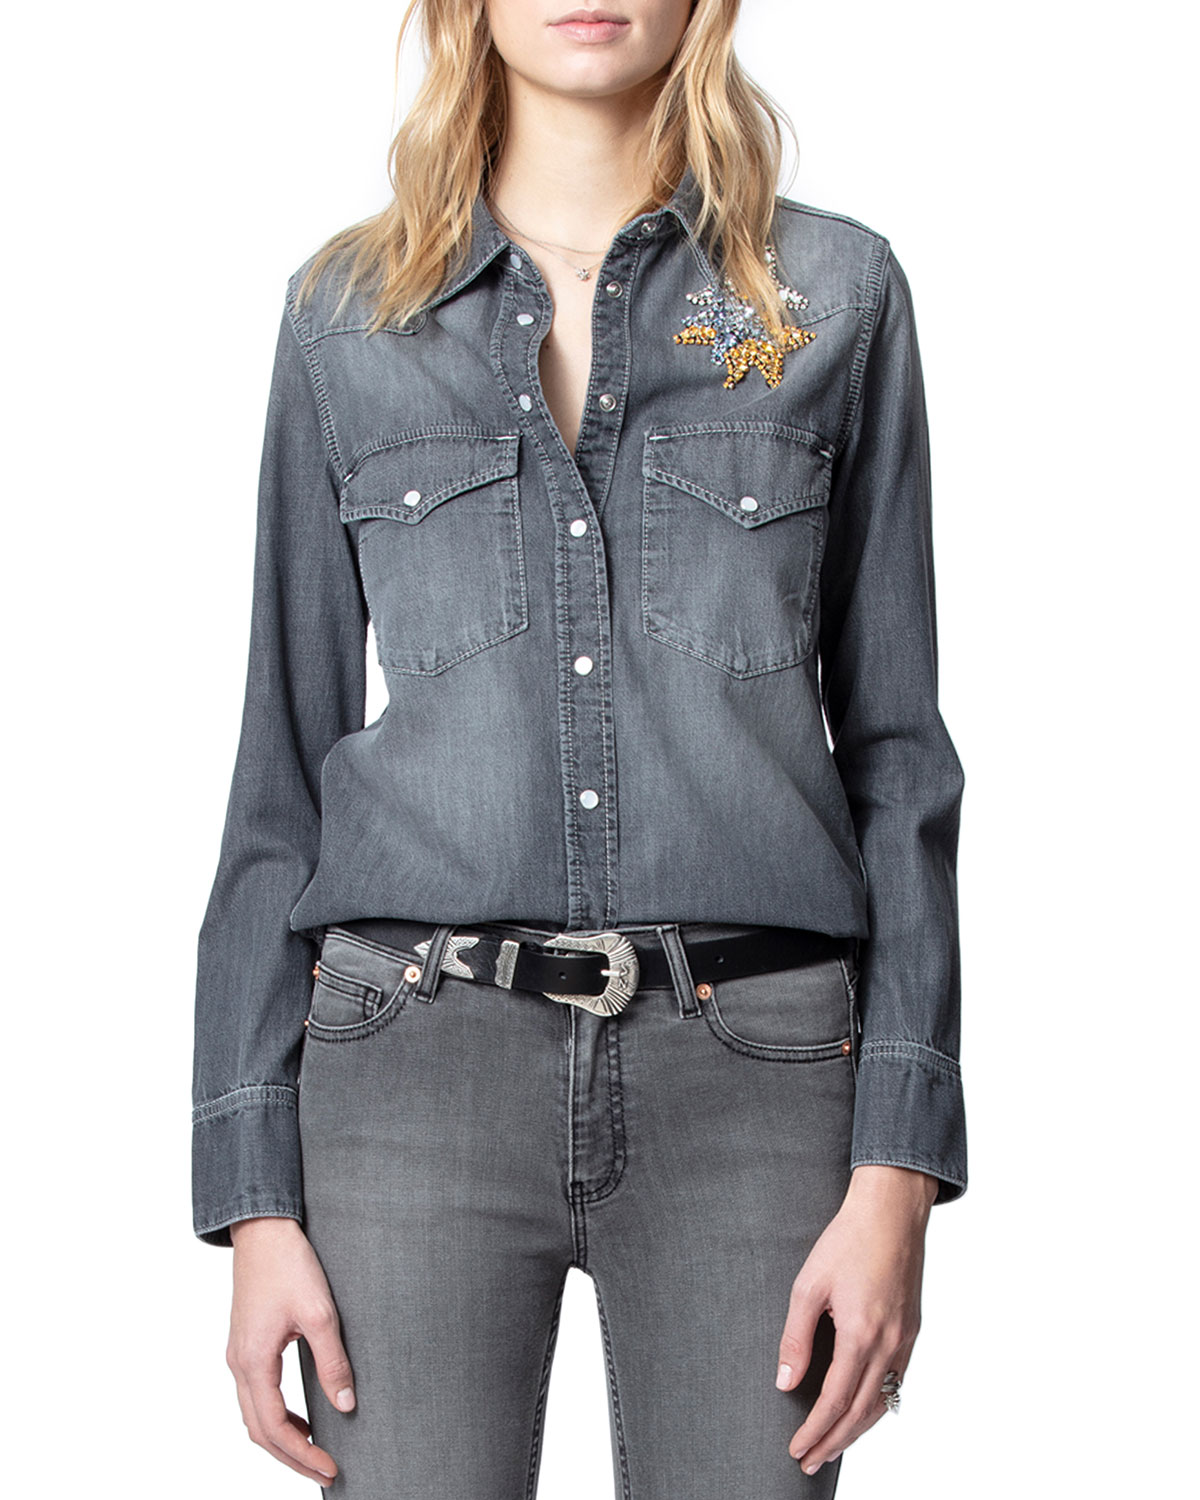 Zadig & Voltaire Thelma Embellished Button-Down Shirt